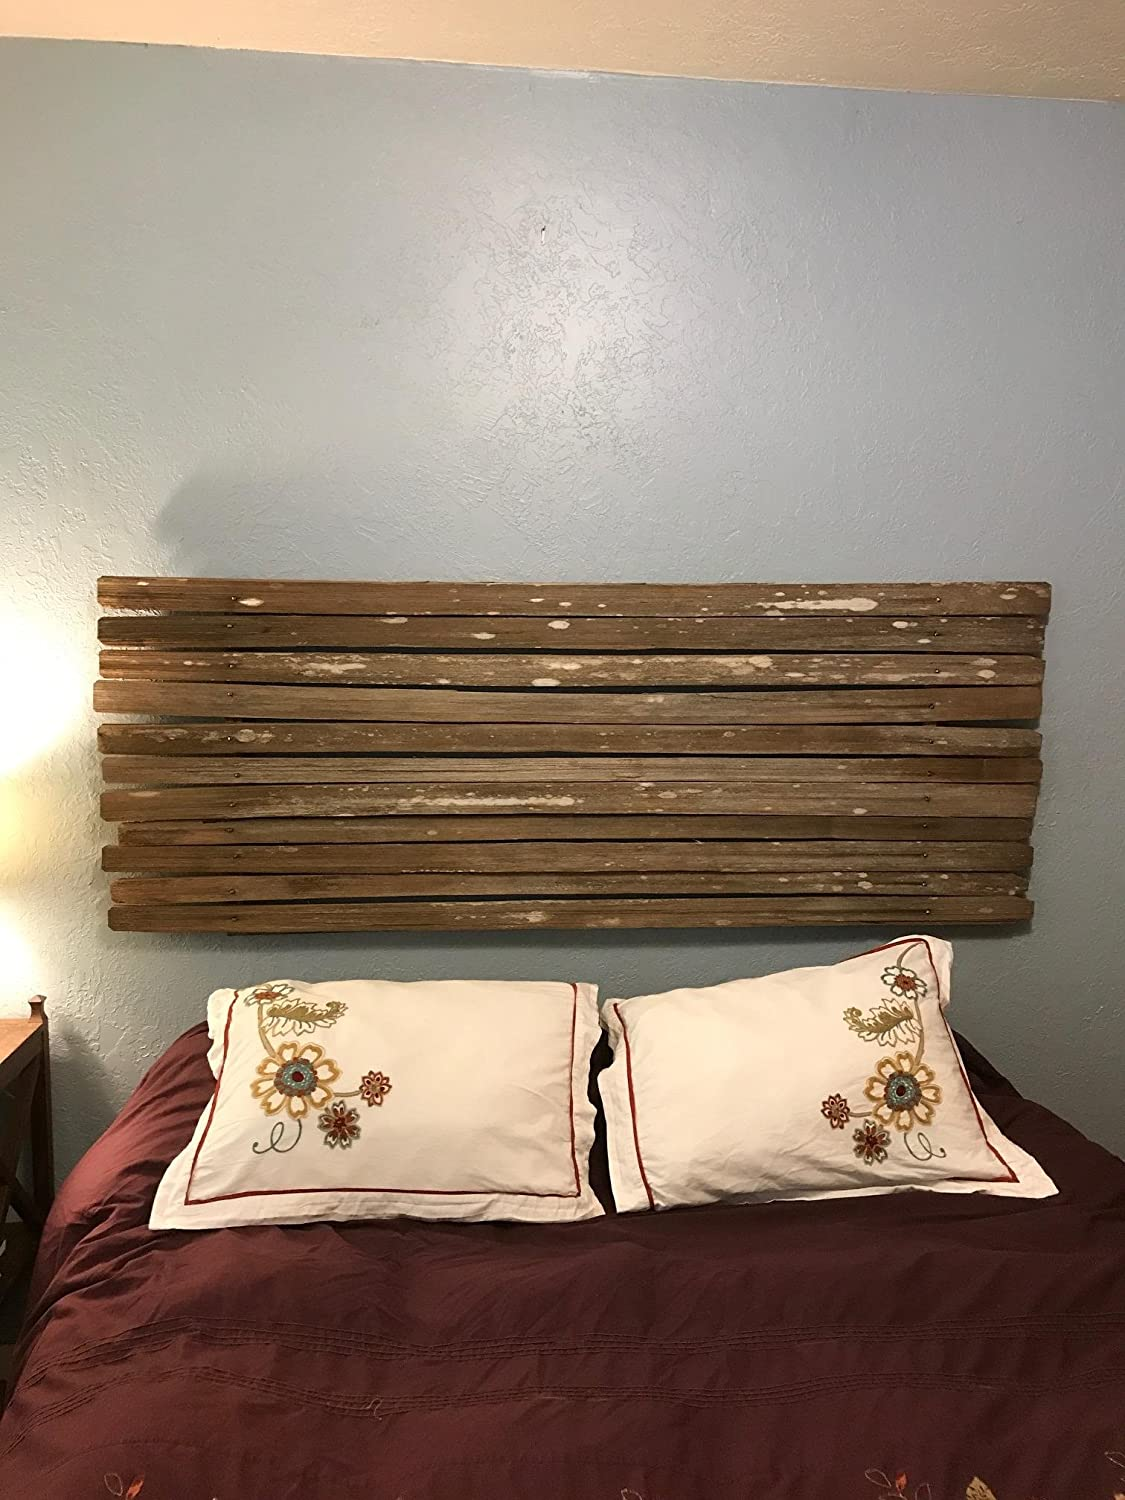 Amazon.com: Garden Gate Queen Headboard - Rustic, reclaimed, shabby ...